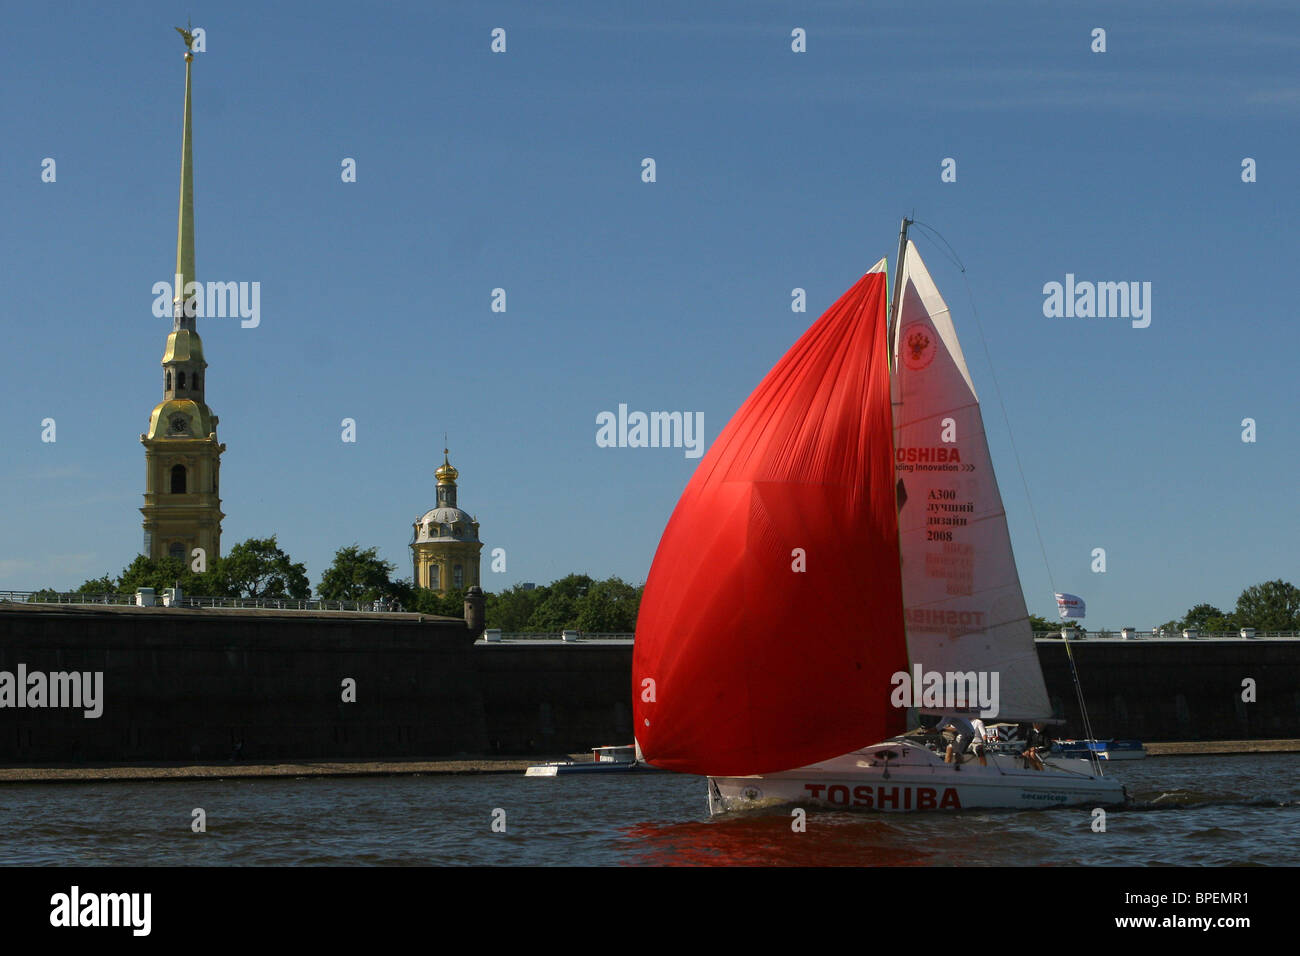 Sails of White Nights-2008 regatta held in St.Petersburg - Stock Image